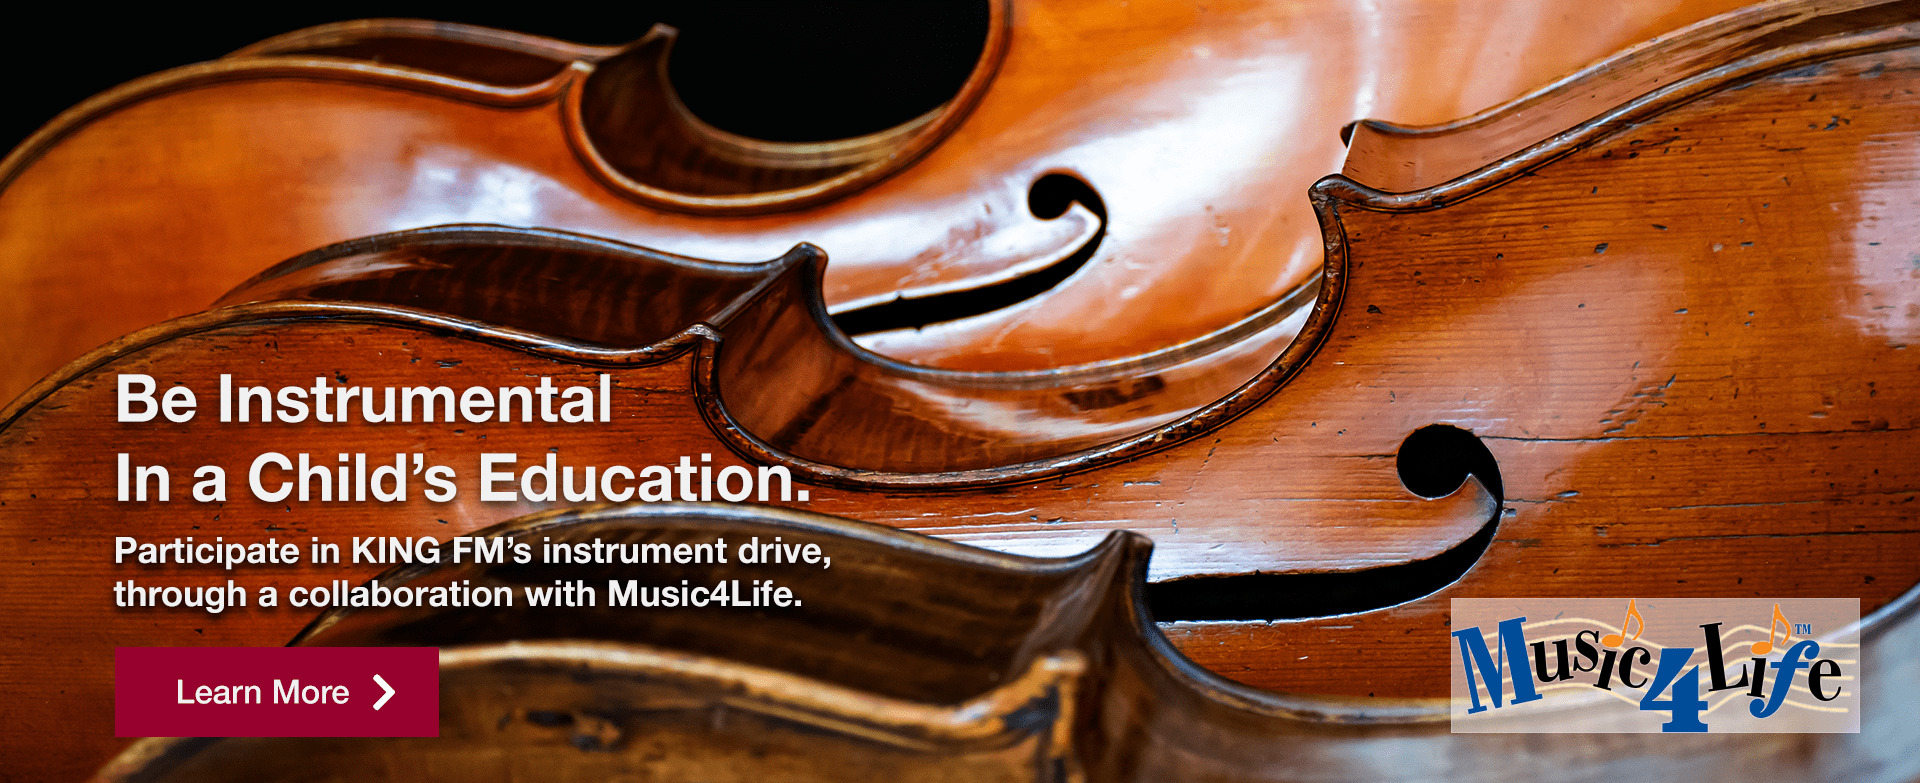 [image of cellos] Be Instrumental in a Child's Education   Participate in KING FM's instrument drive, through a collaboration with Music4Life.